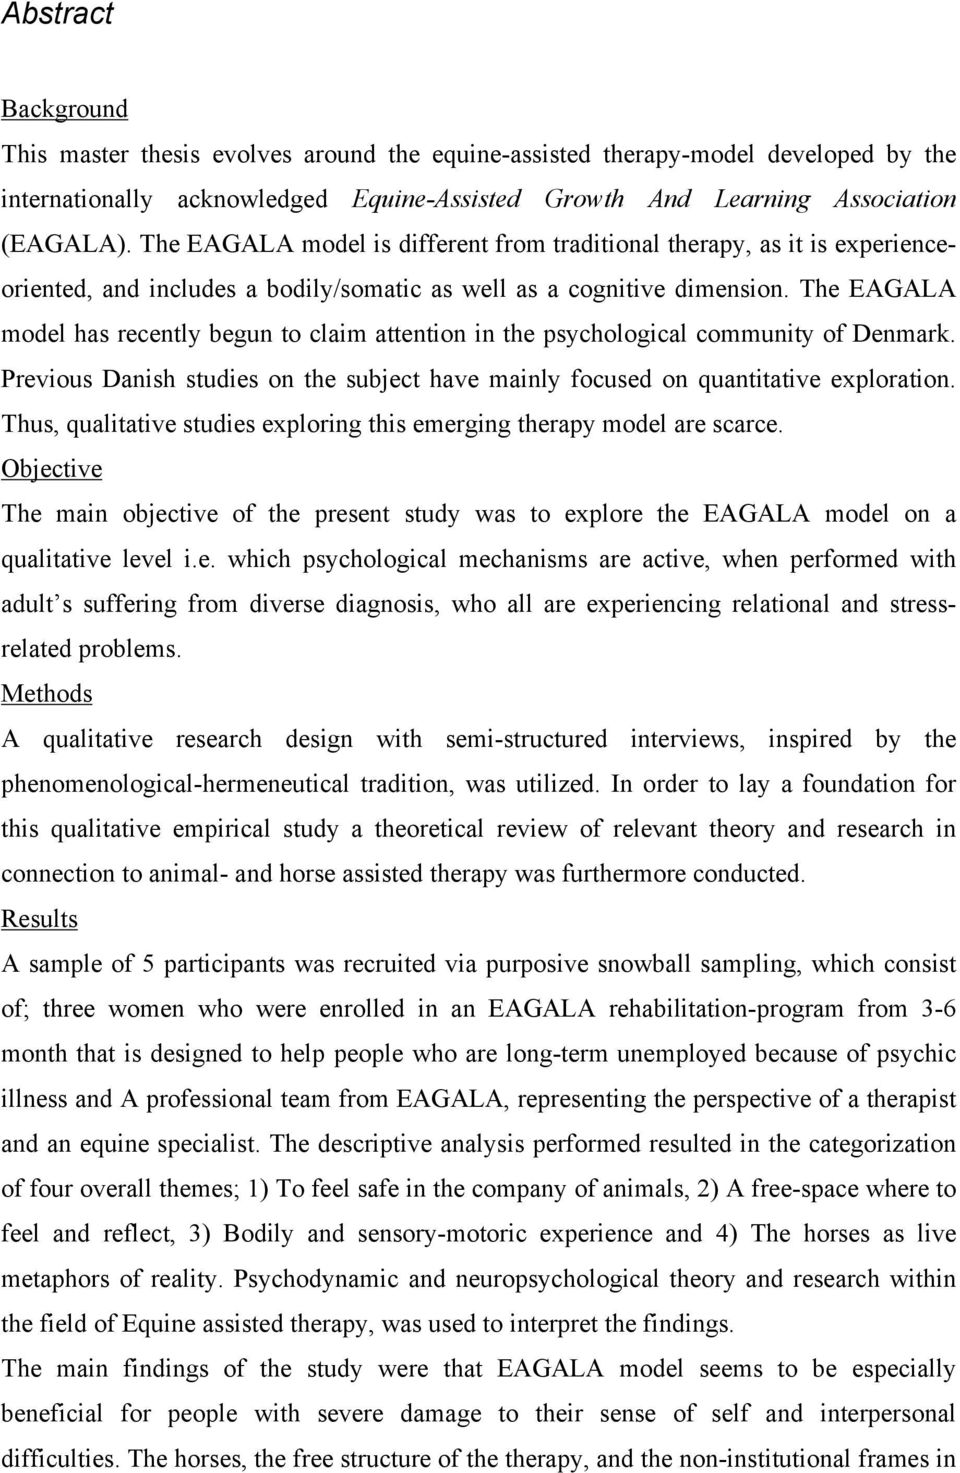 The EAGALA model has recently begun to claim attention in the psychological community of Denmark. Previous Danish studies on the subject have mainly focused on quantitative exploration.